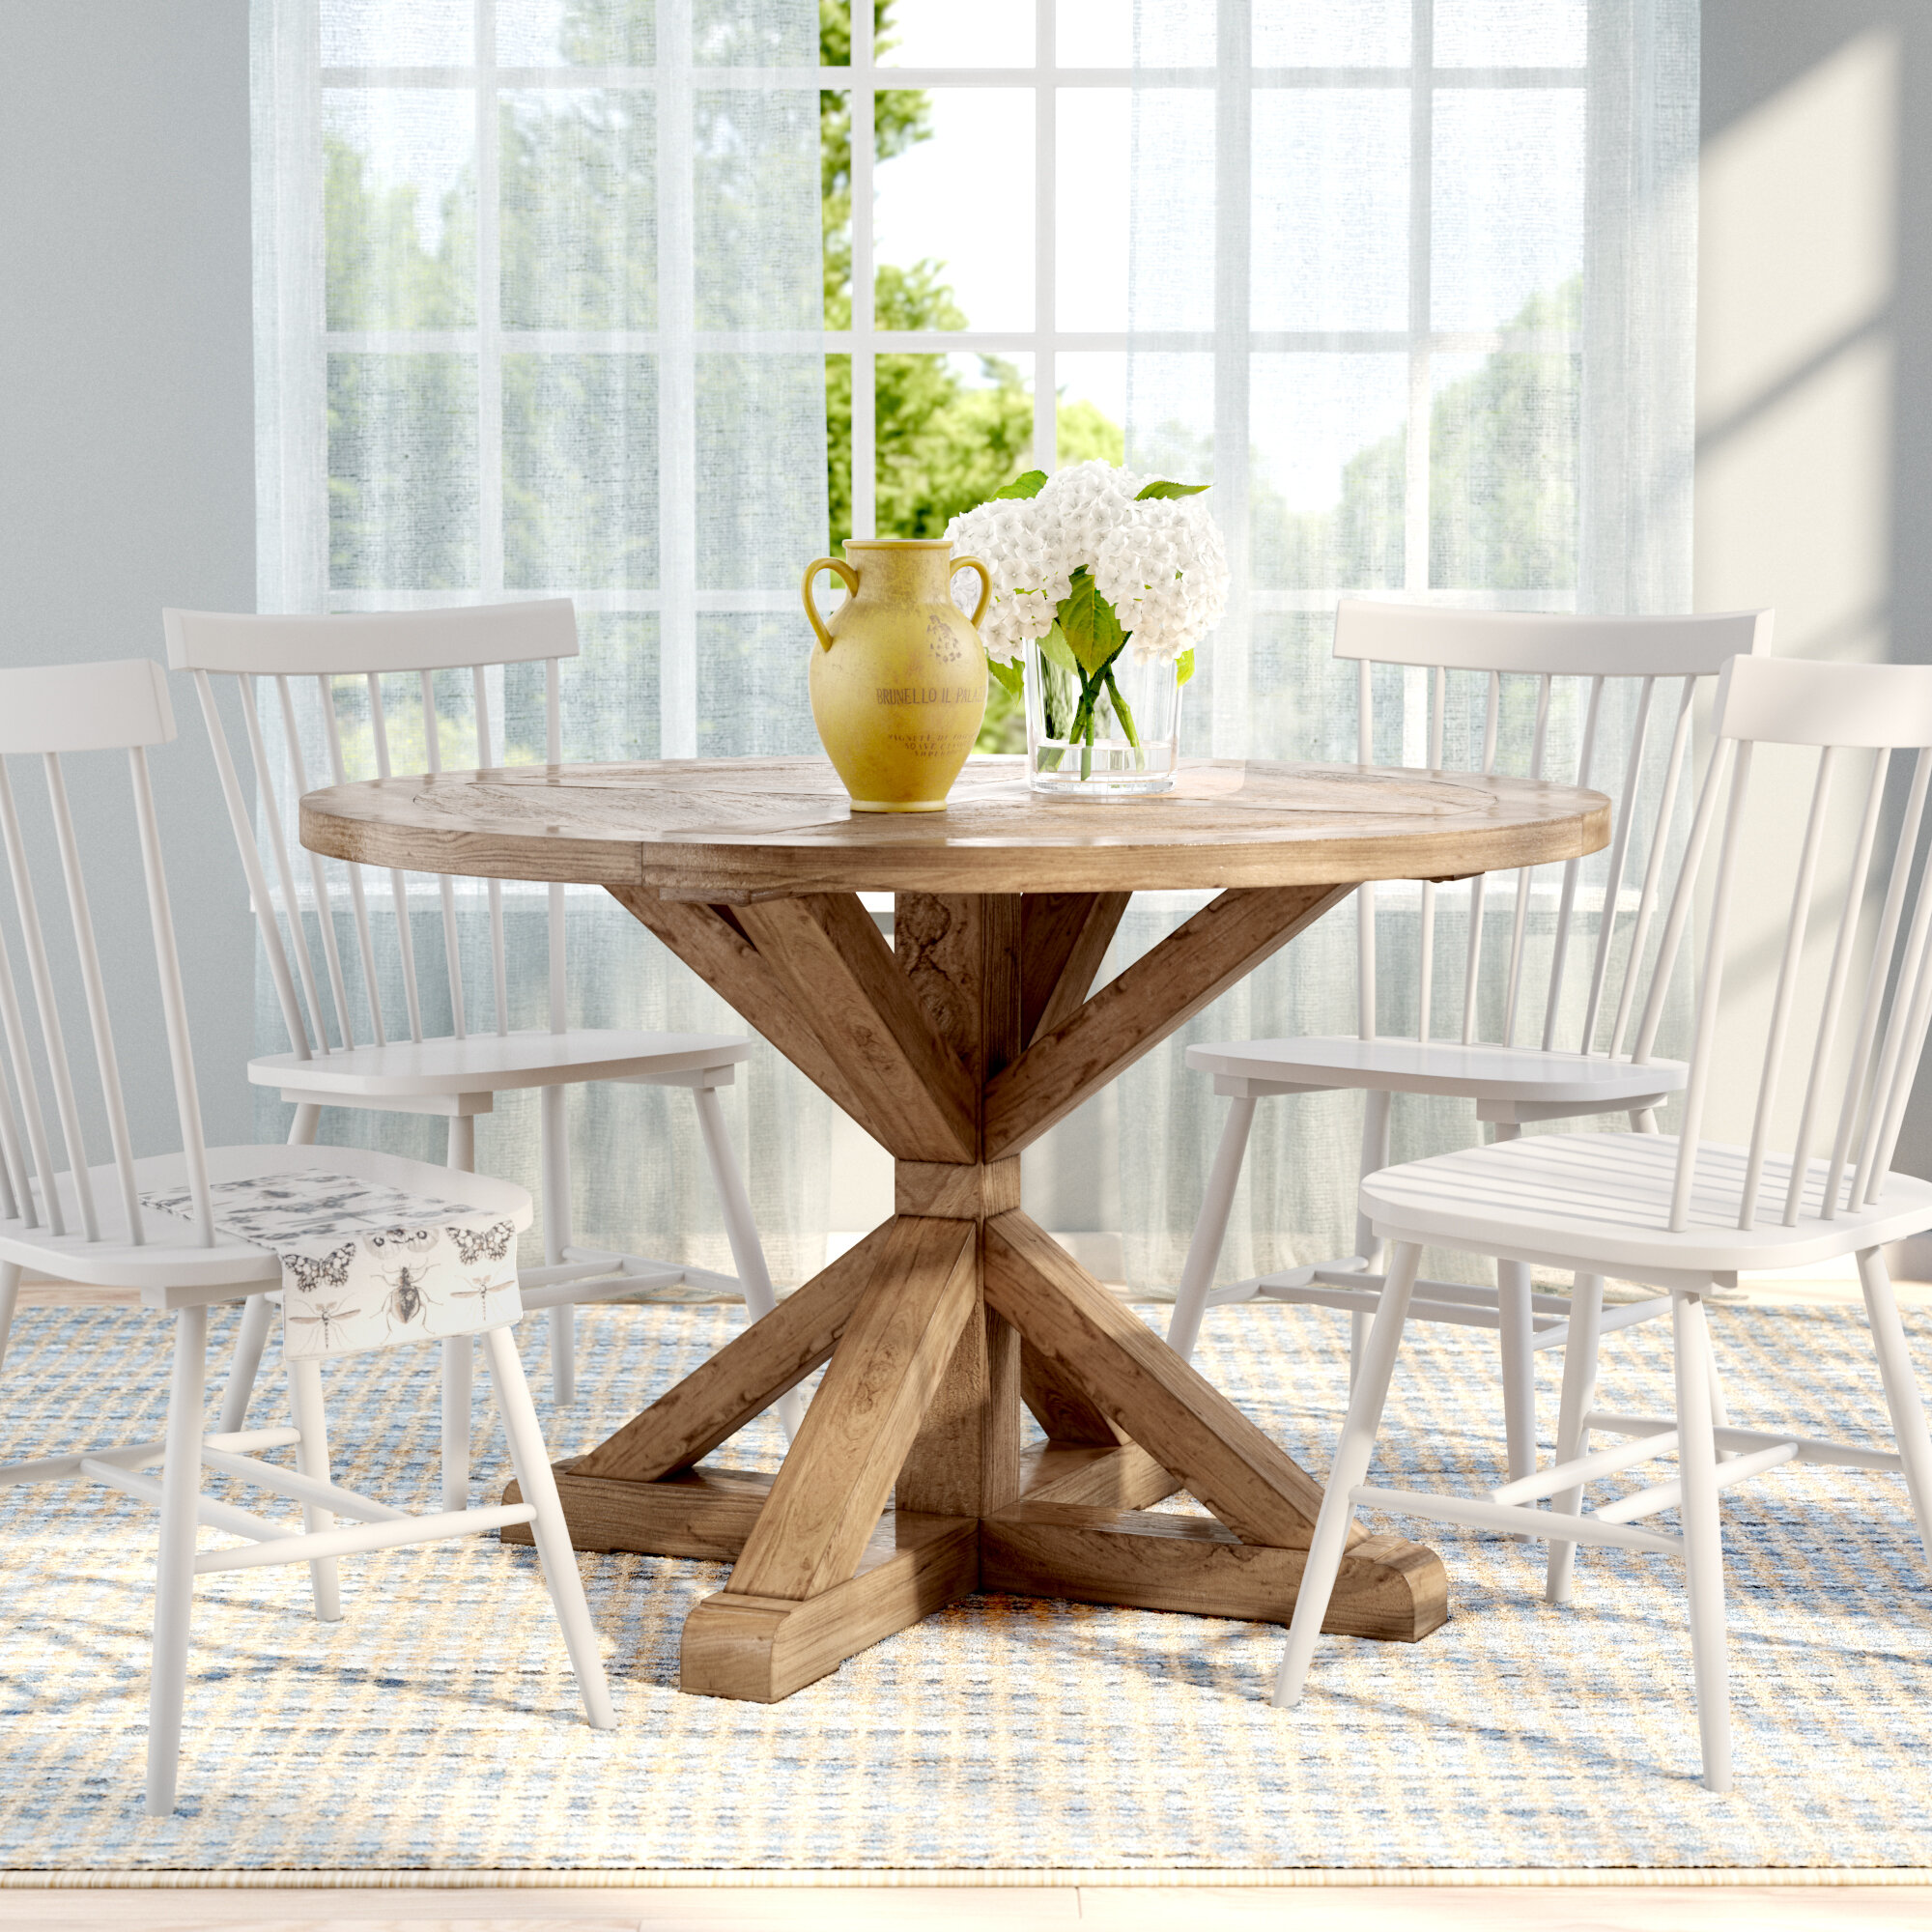 pedestal small elegant with legs room rustic wit table and astonishing white of for wooden vintage design claw dining round kitchen furniture decoration image